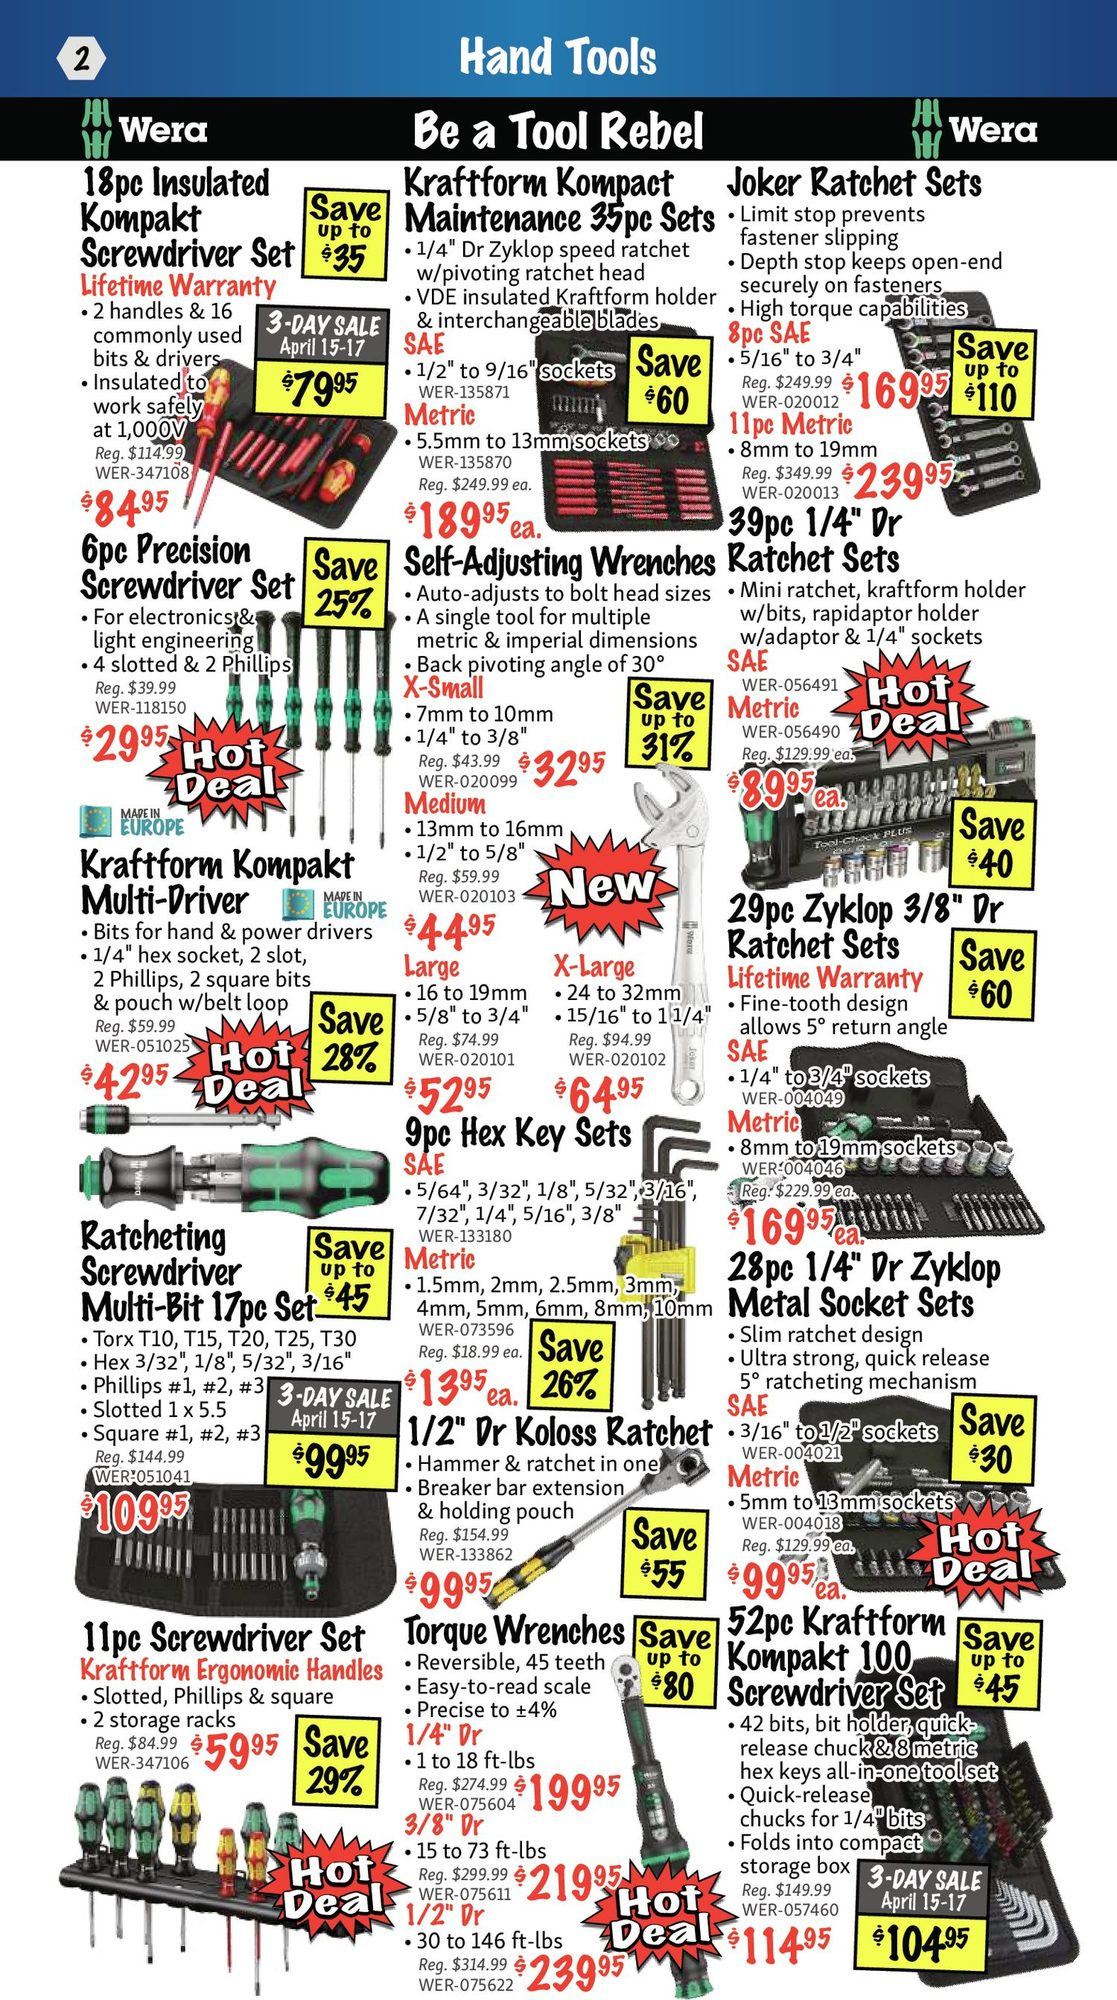 KMS Tools - Hand Tools, Air Tools & Compressor Sale - Page 2